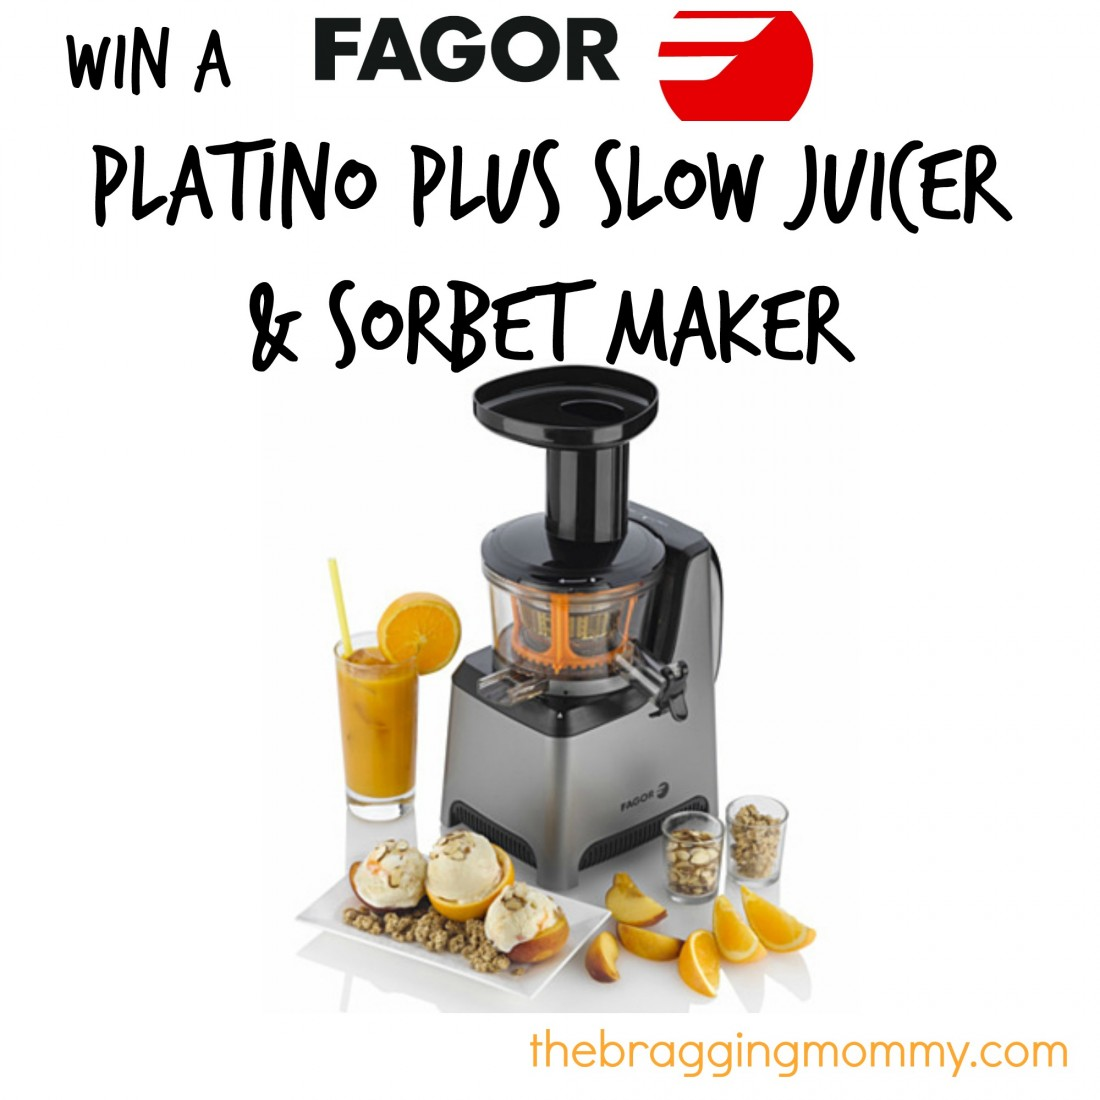 Slow Juicer Sorbetto : {Brag Worthy Christmas} Fagor America Platino Plus Slow Juicer & Sorbet Maker Review and Giveaway